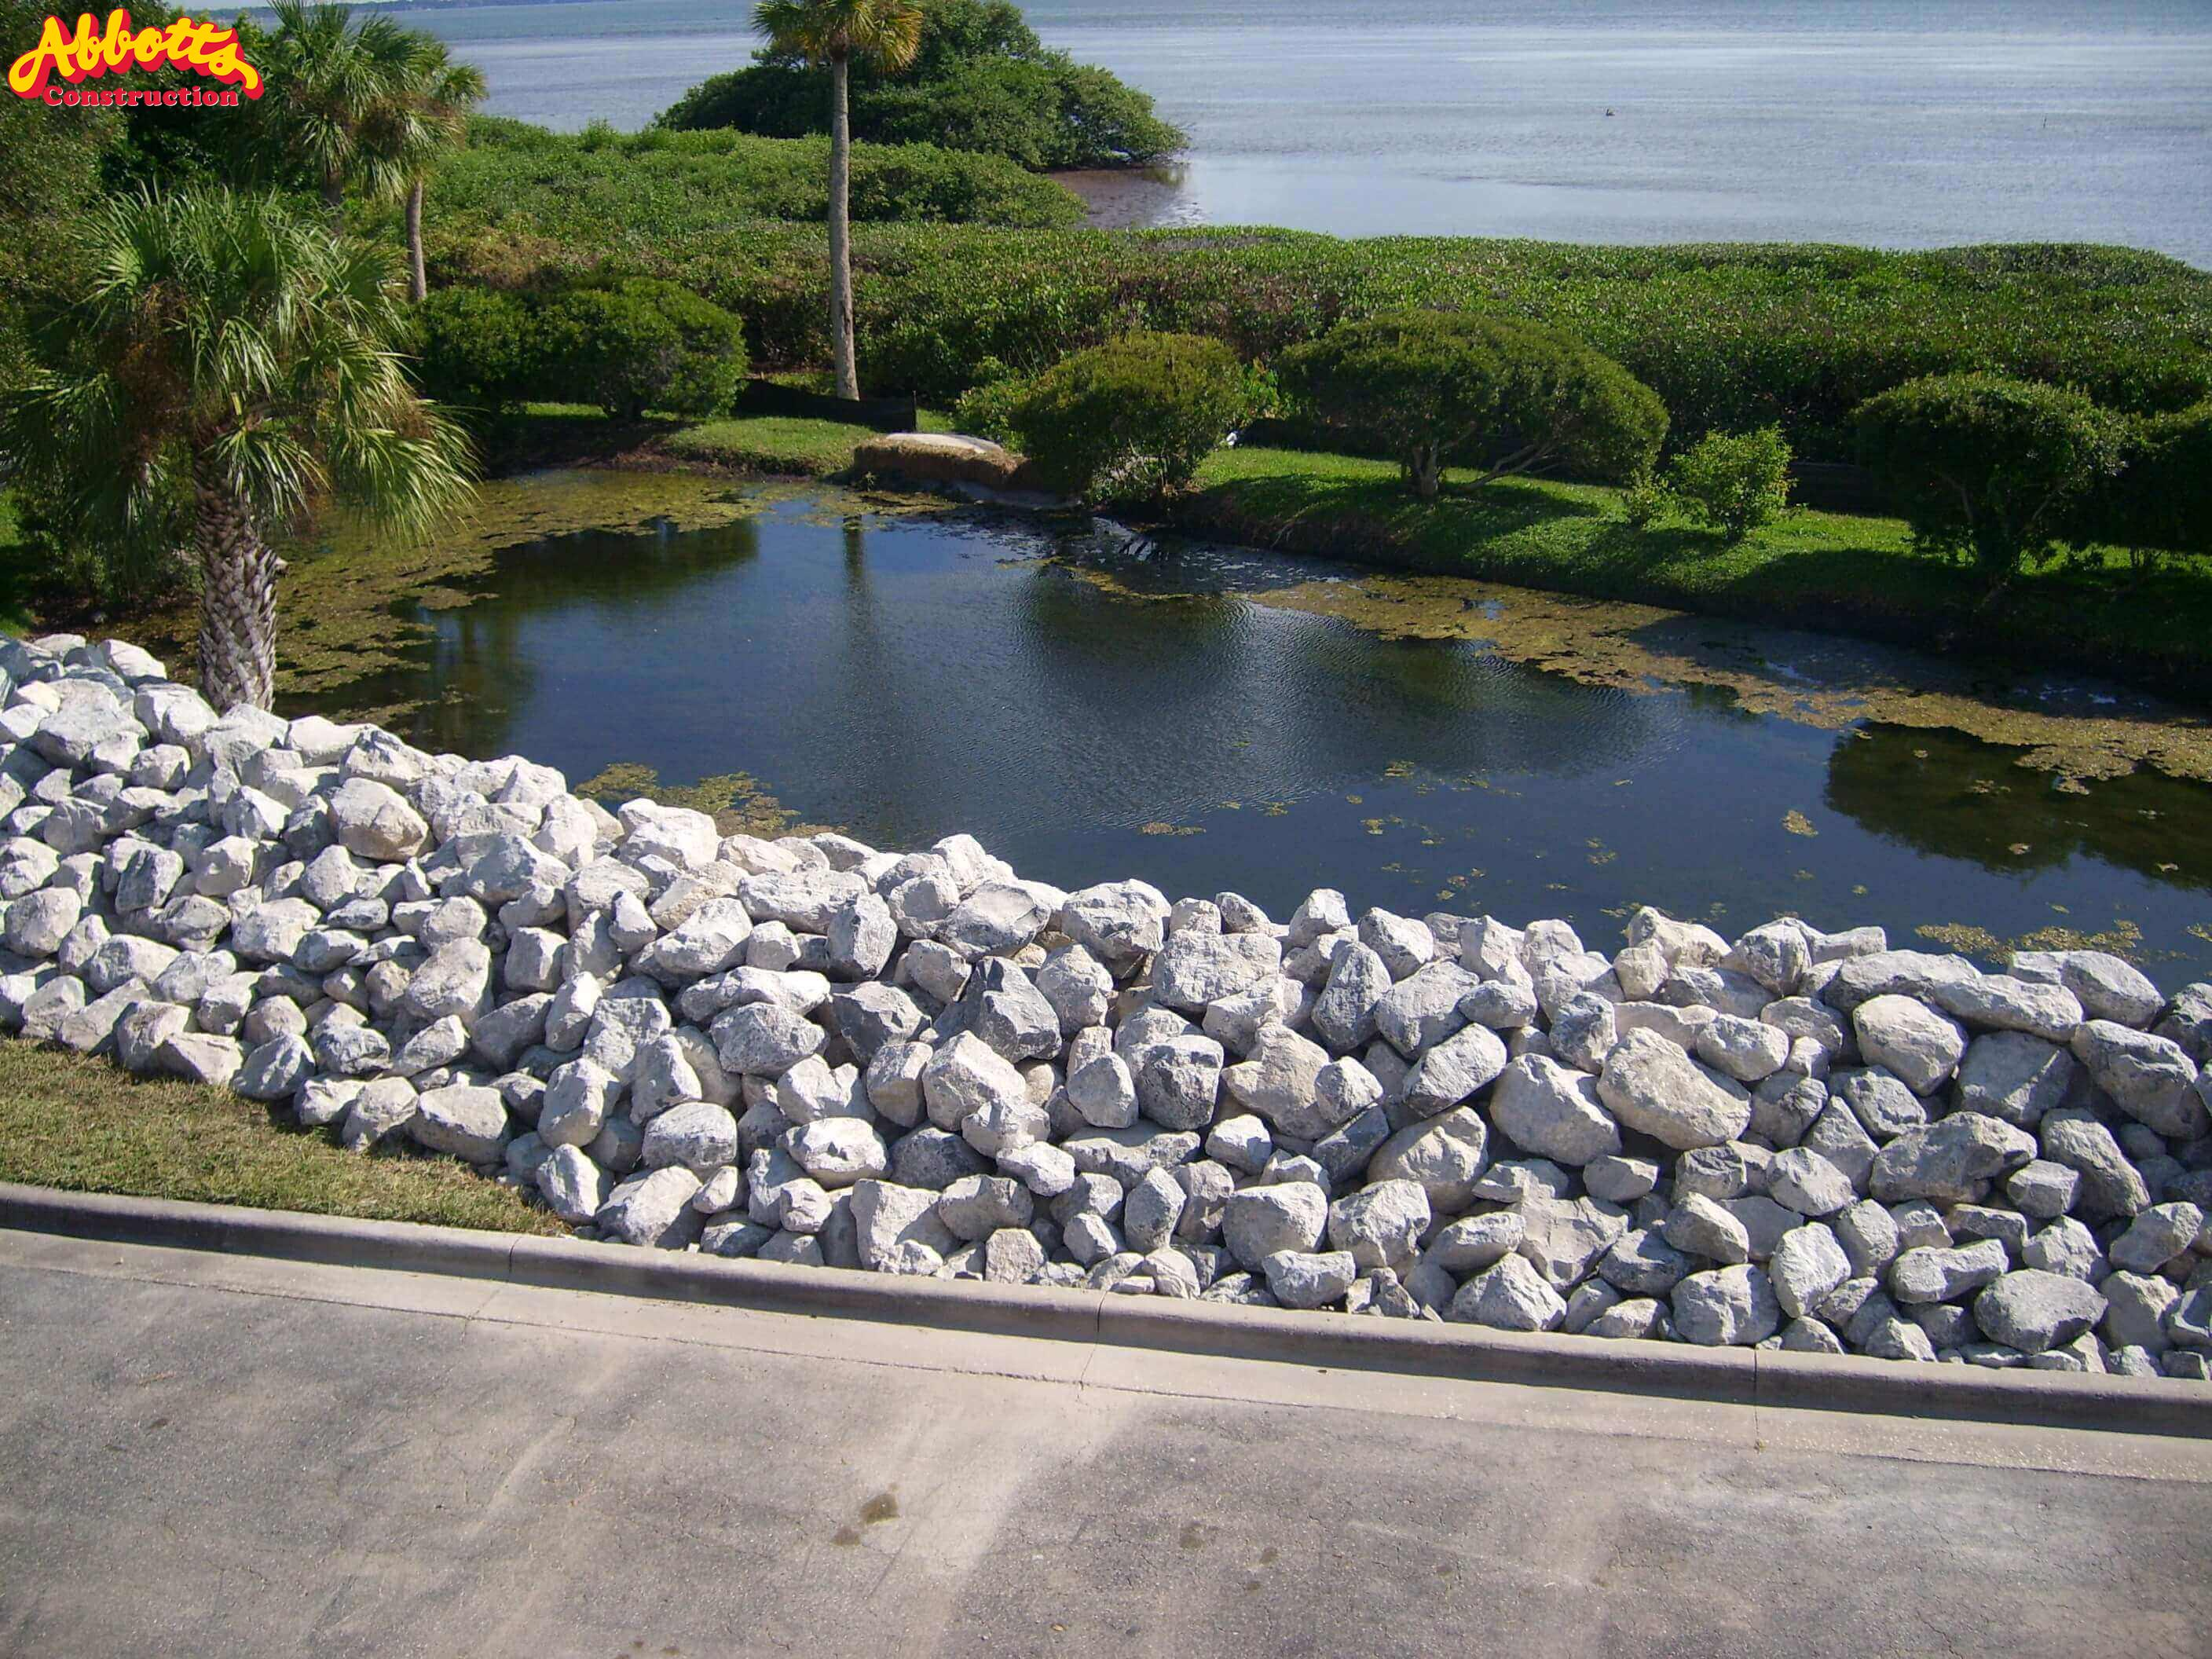 Revetment in Sarasota, FL | Abbotts' Construction Services